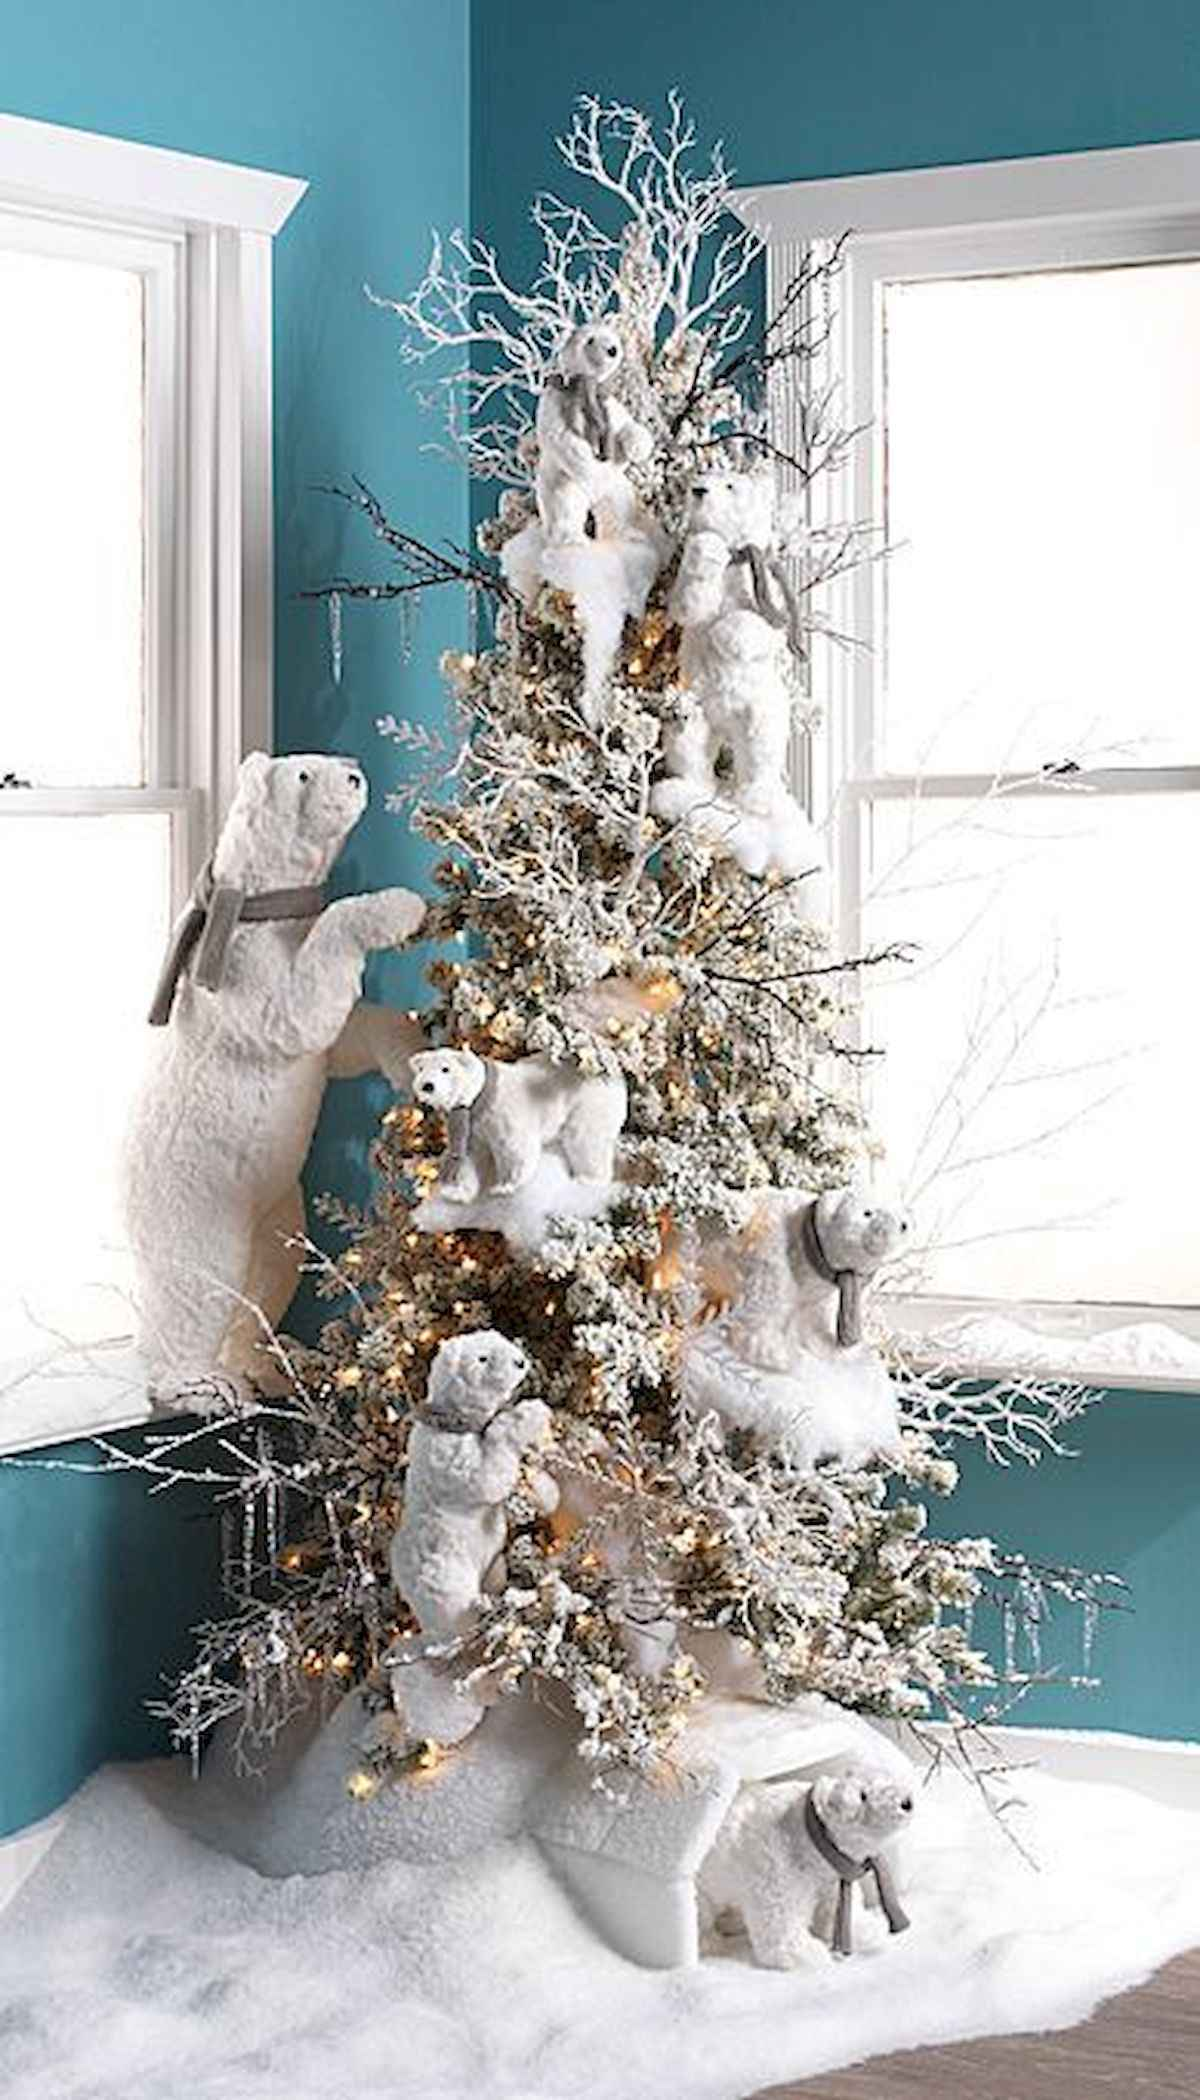 60 awesome christmas tree decorations ideas (4)